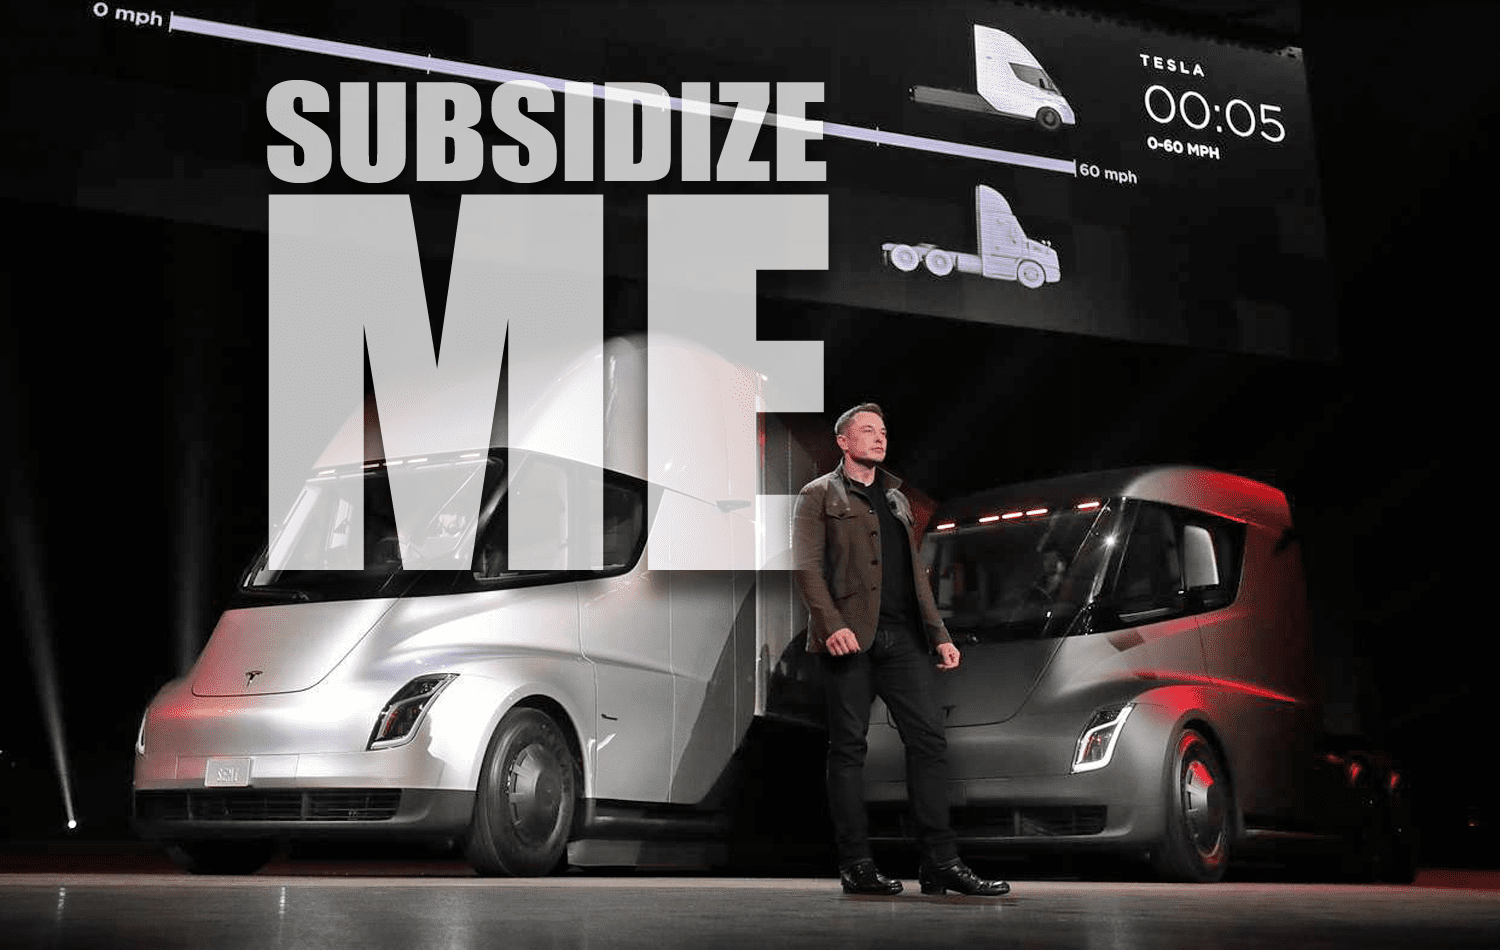 Tesla Truck Eligible for $75,000 EV Tax Credit (in Canada)